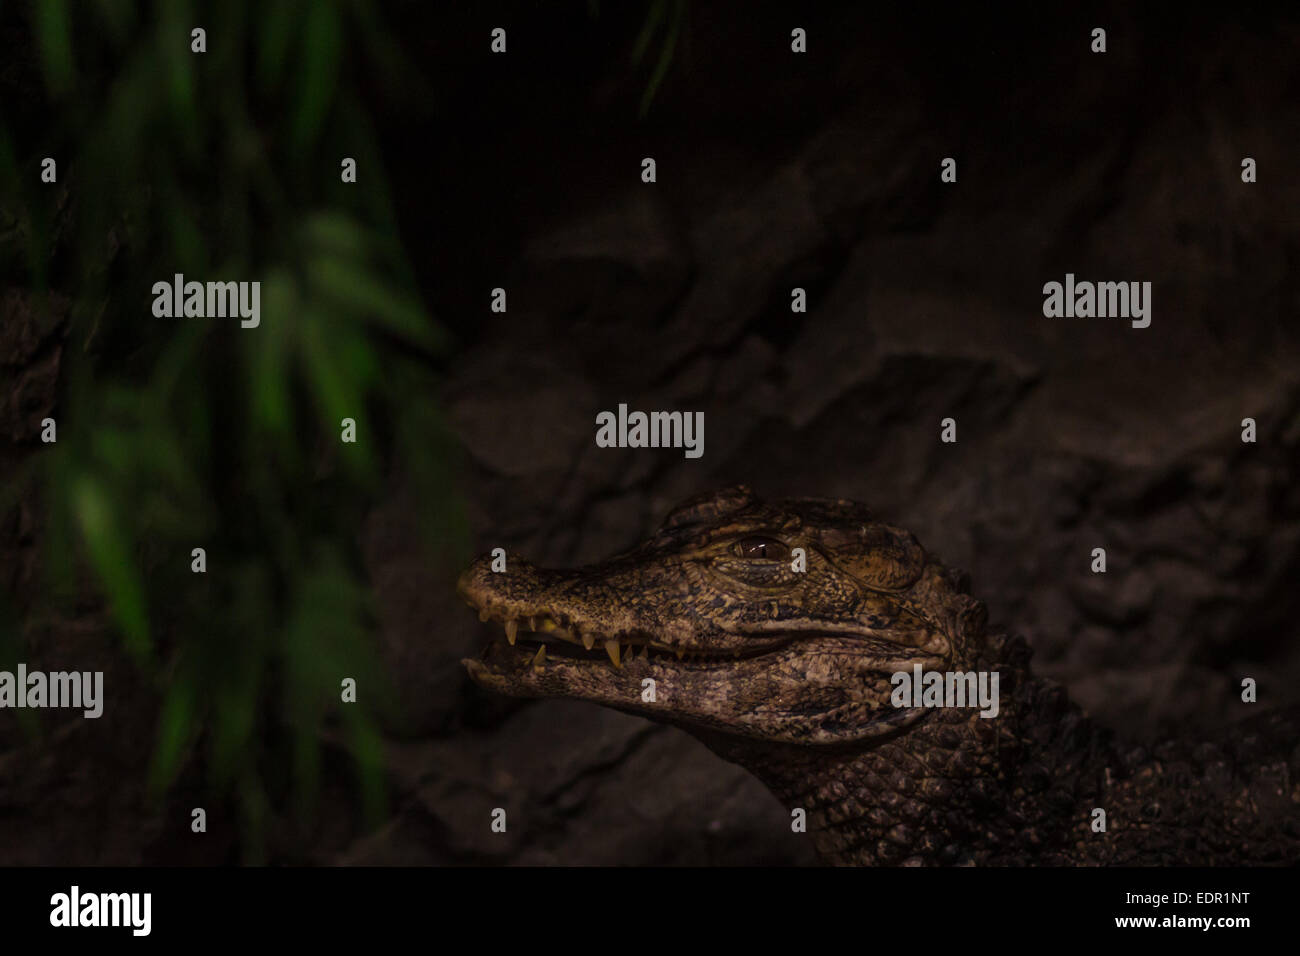 Close-up of the head of the South American Cuvier's dwarf caiman (Paleosuchus palpebrosus) - Stock Image